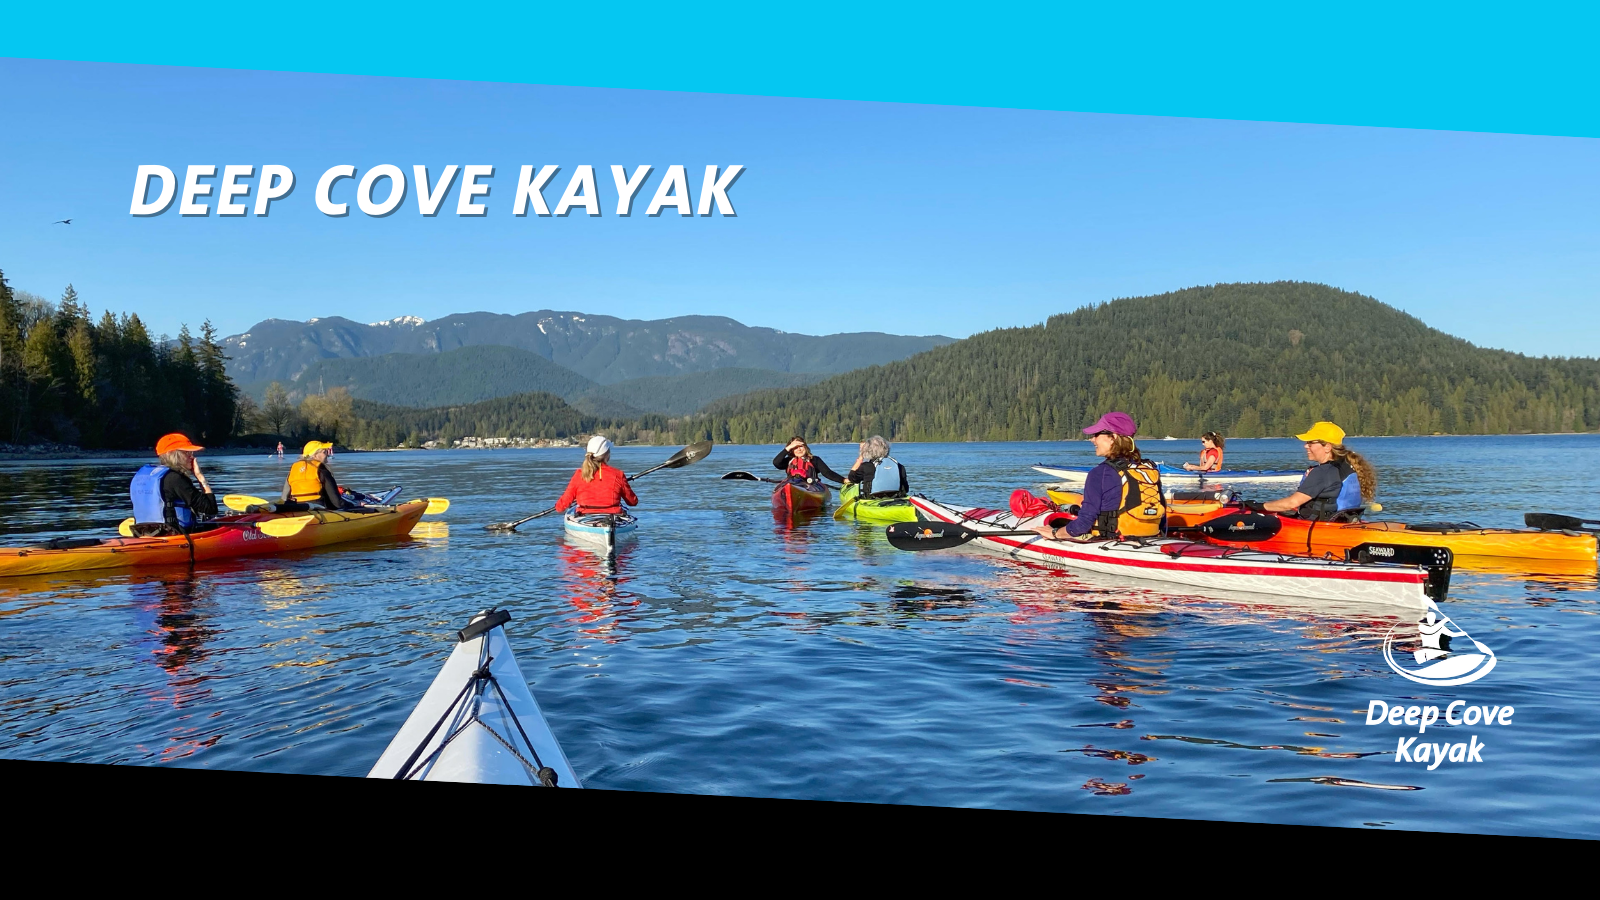 Deep Cove Kayak Waterfront location